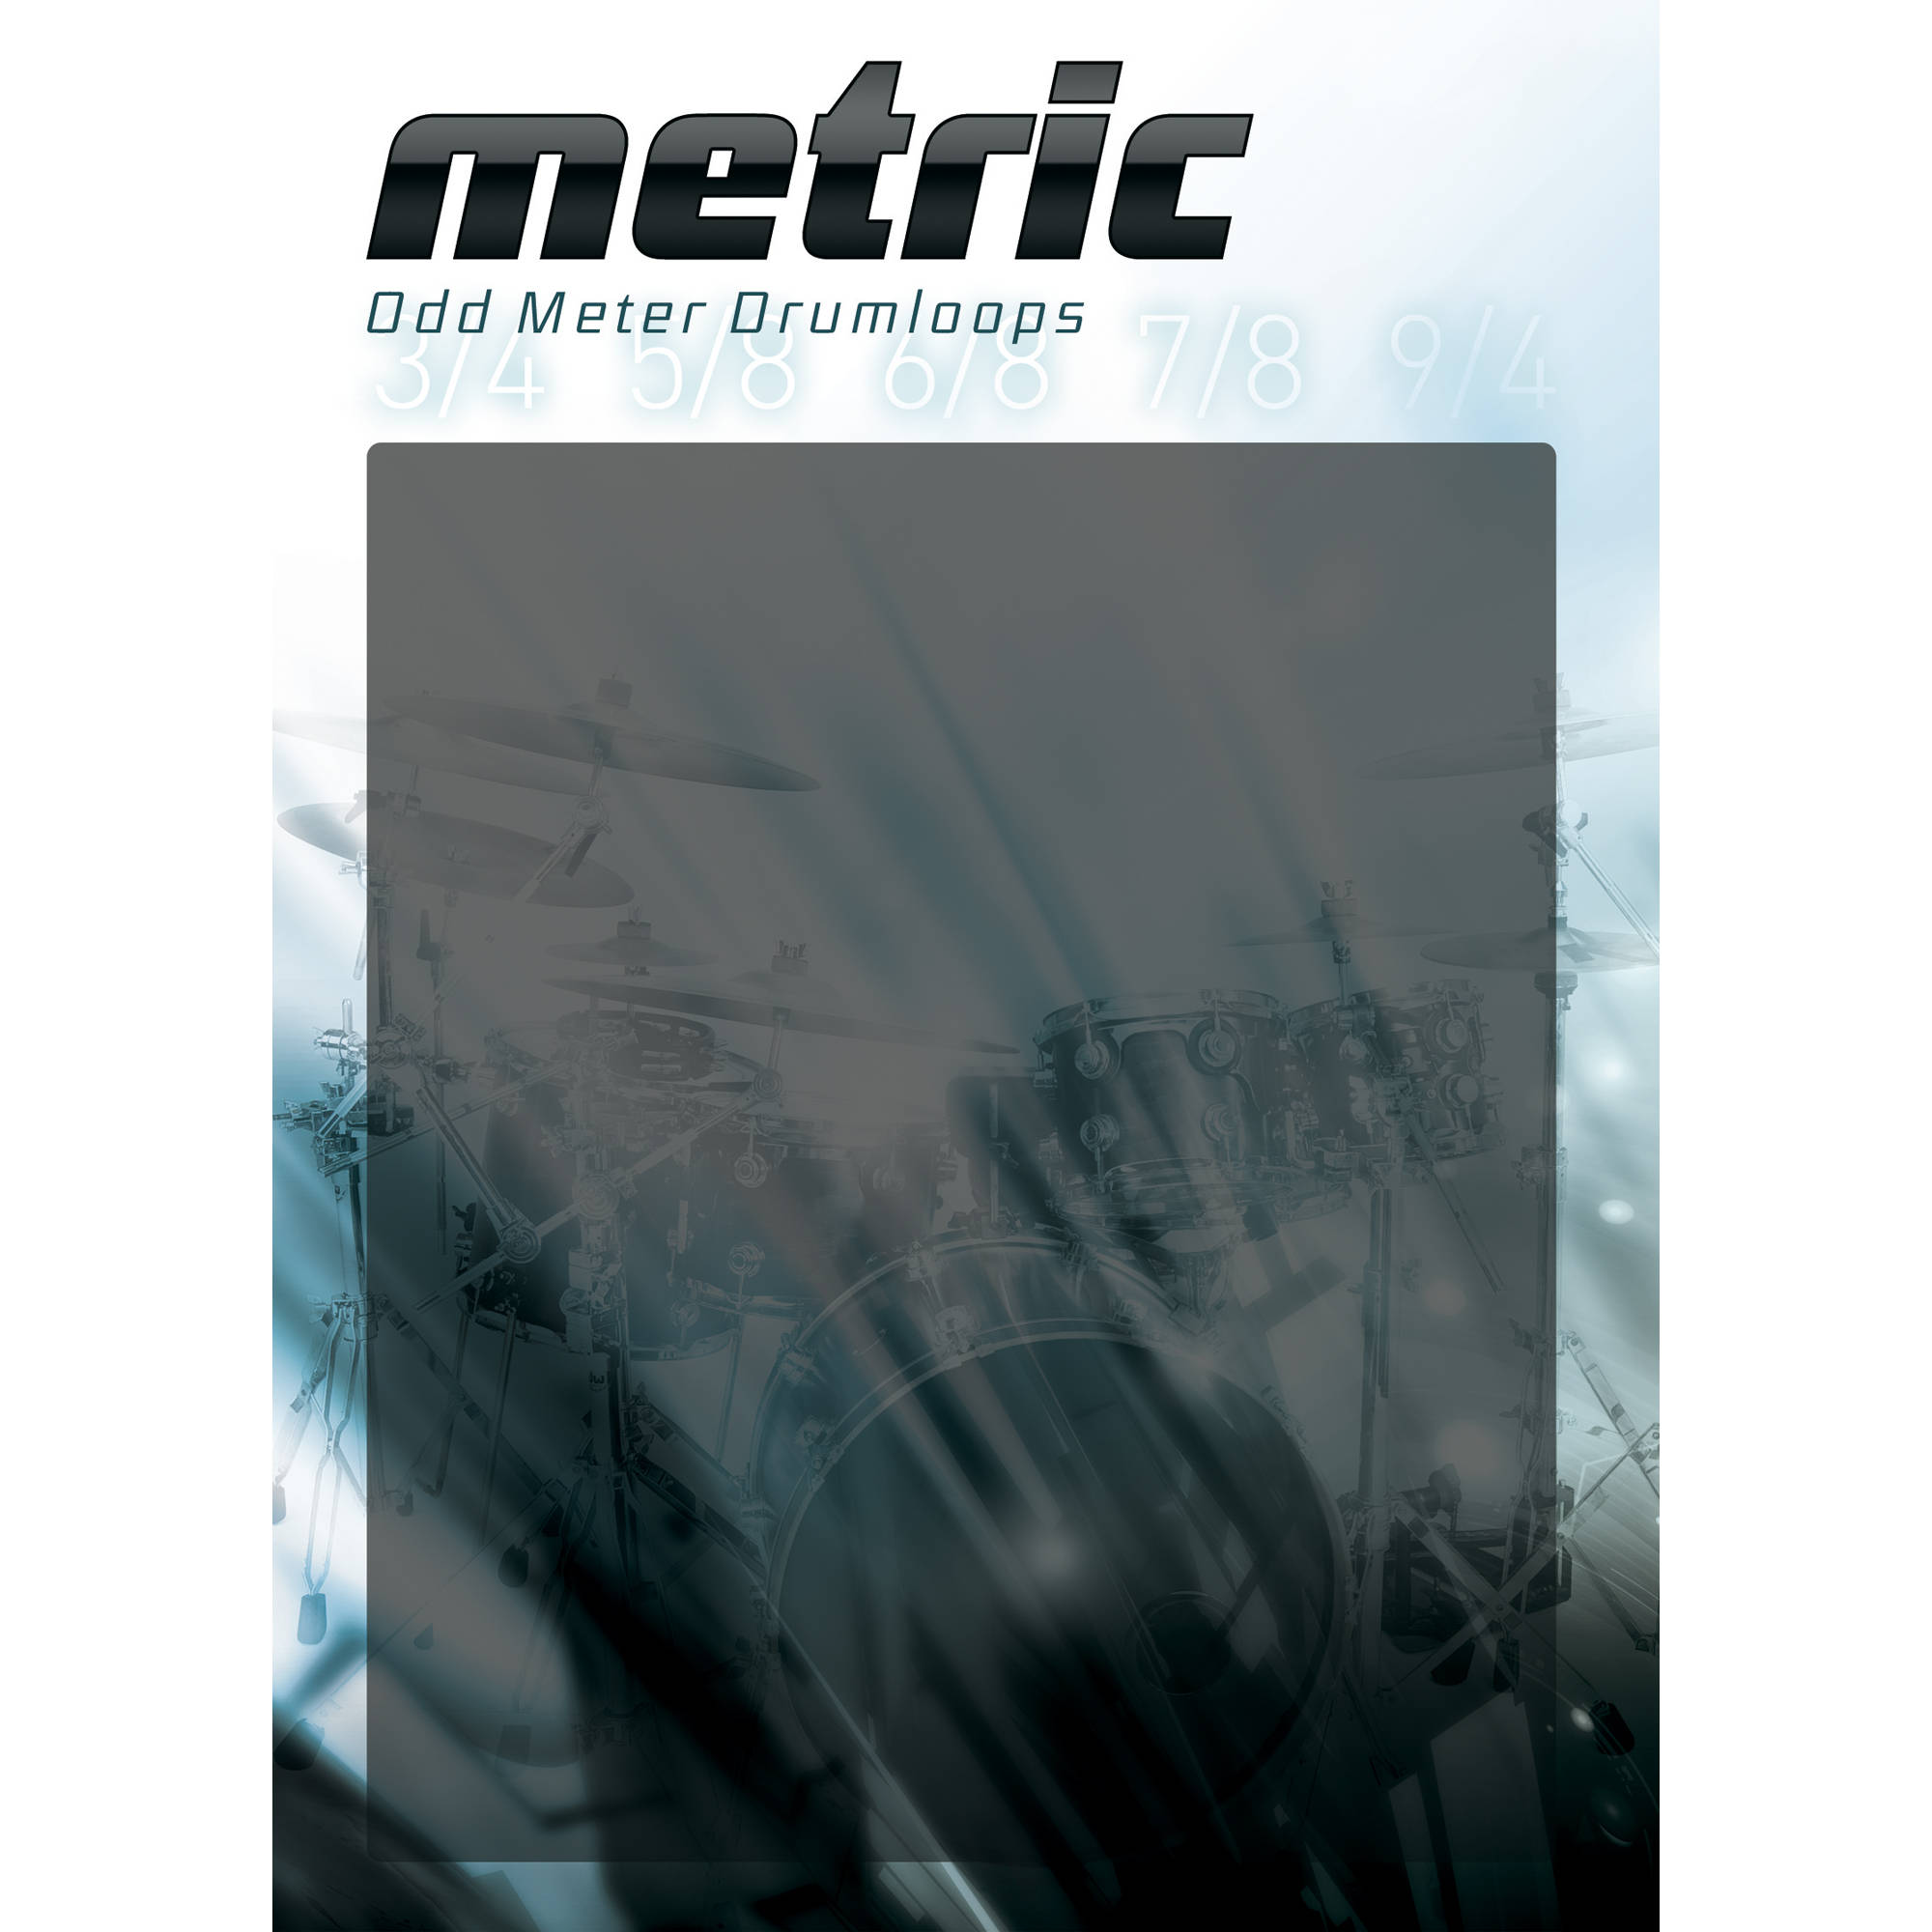 Big fish audio metric odd meter drumloops multiformat dvdr airiso